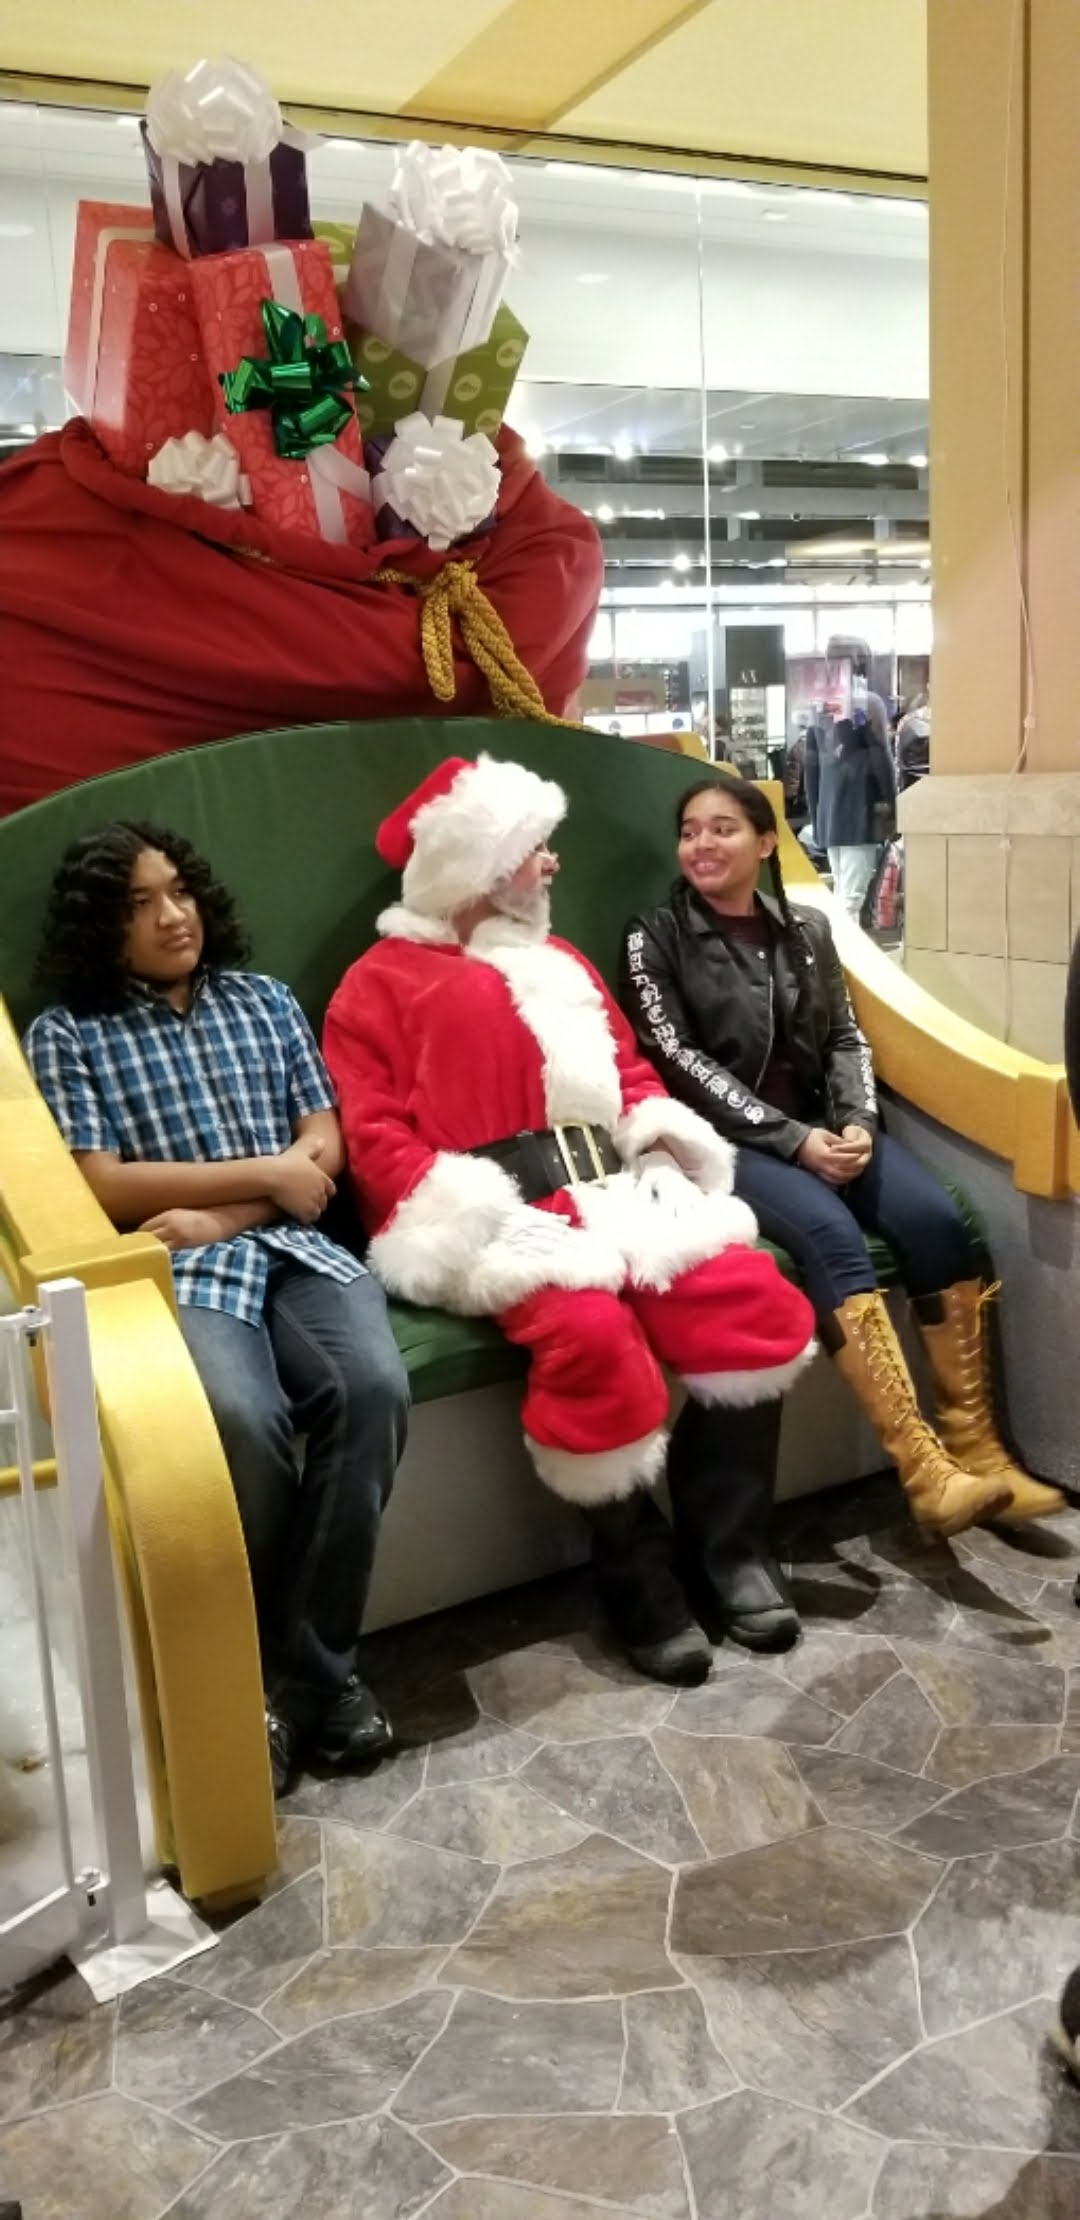 Visiting Santa is a Great Family Tradition